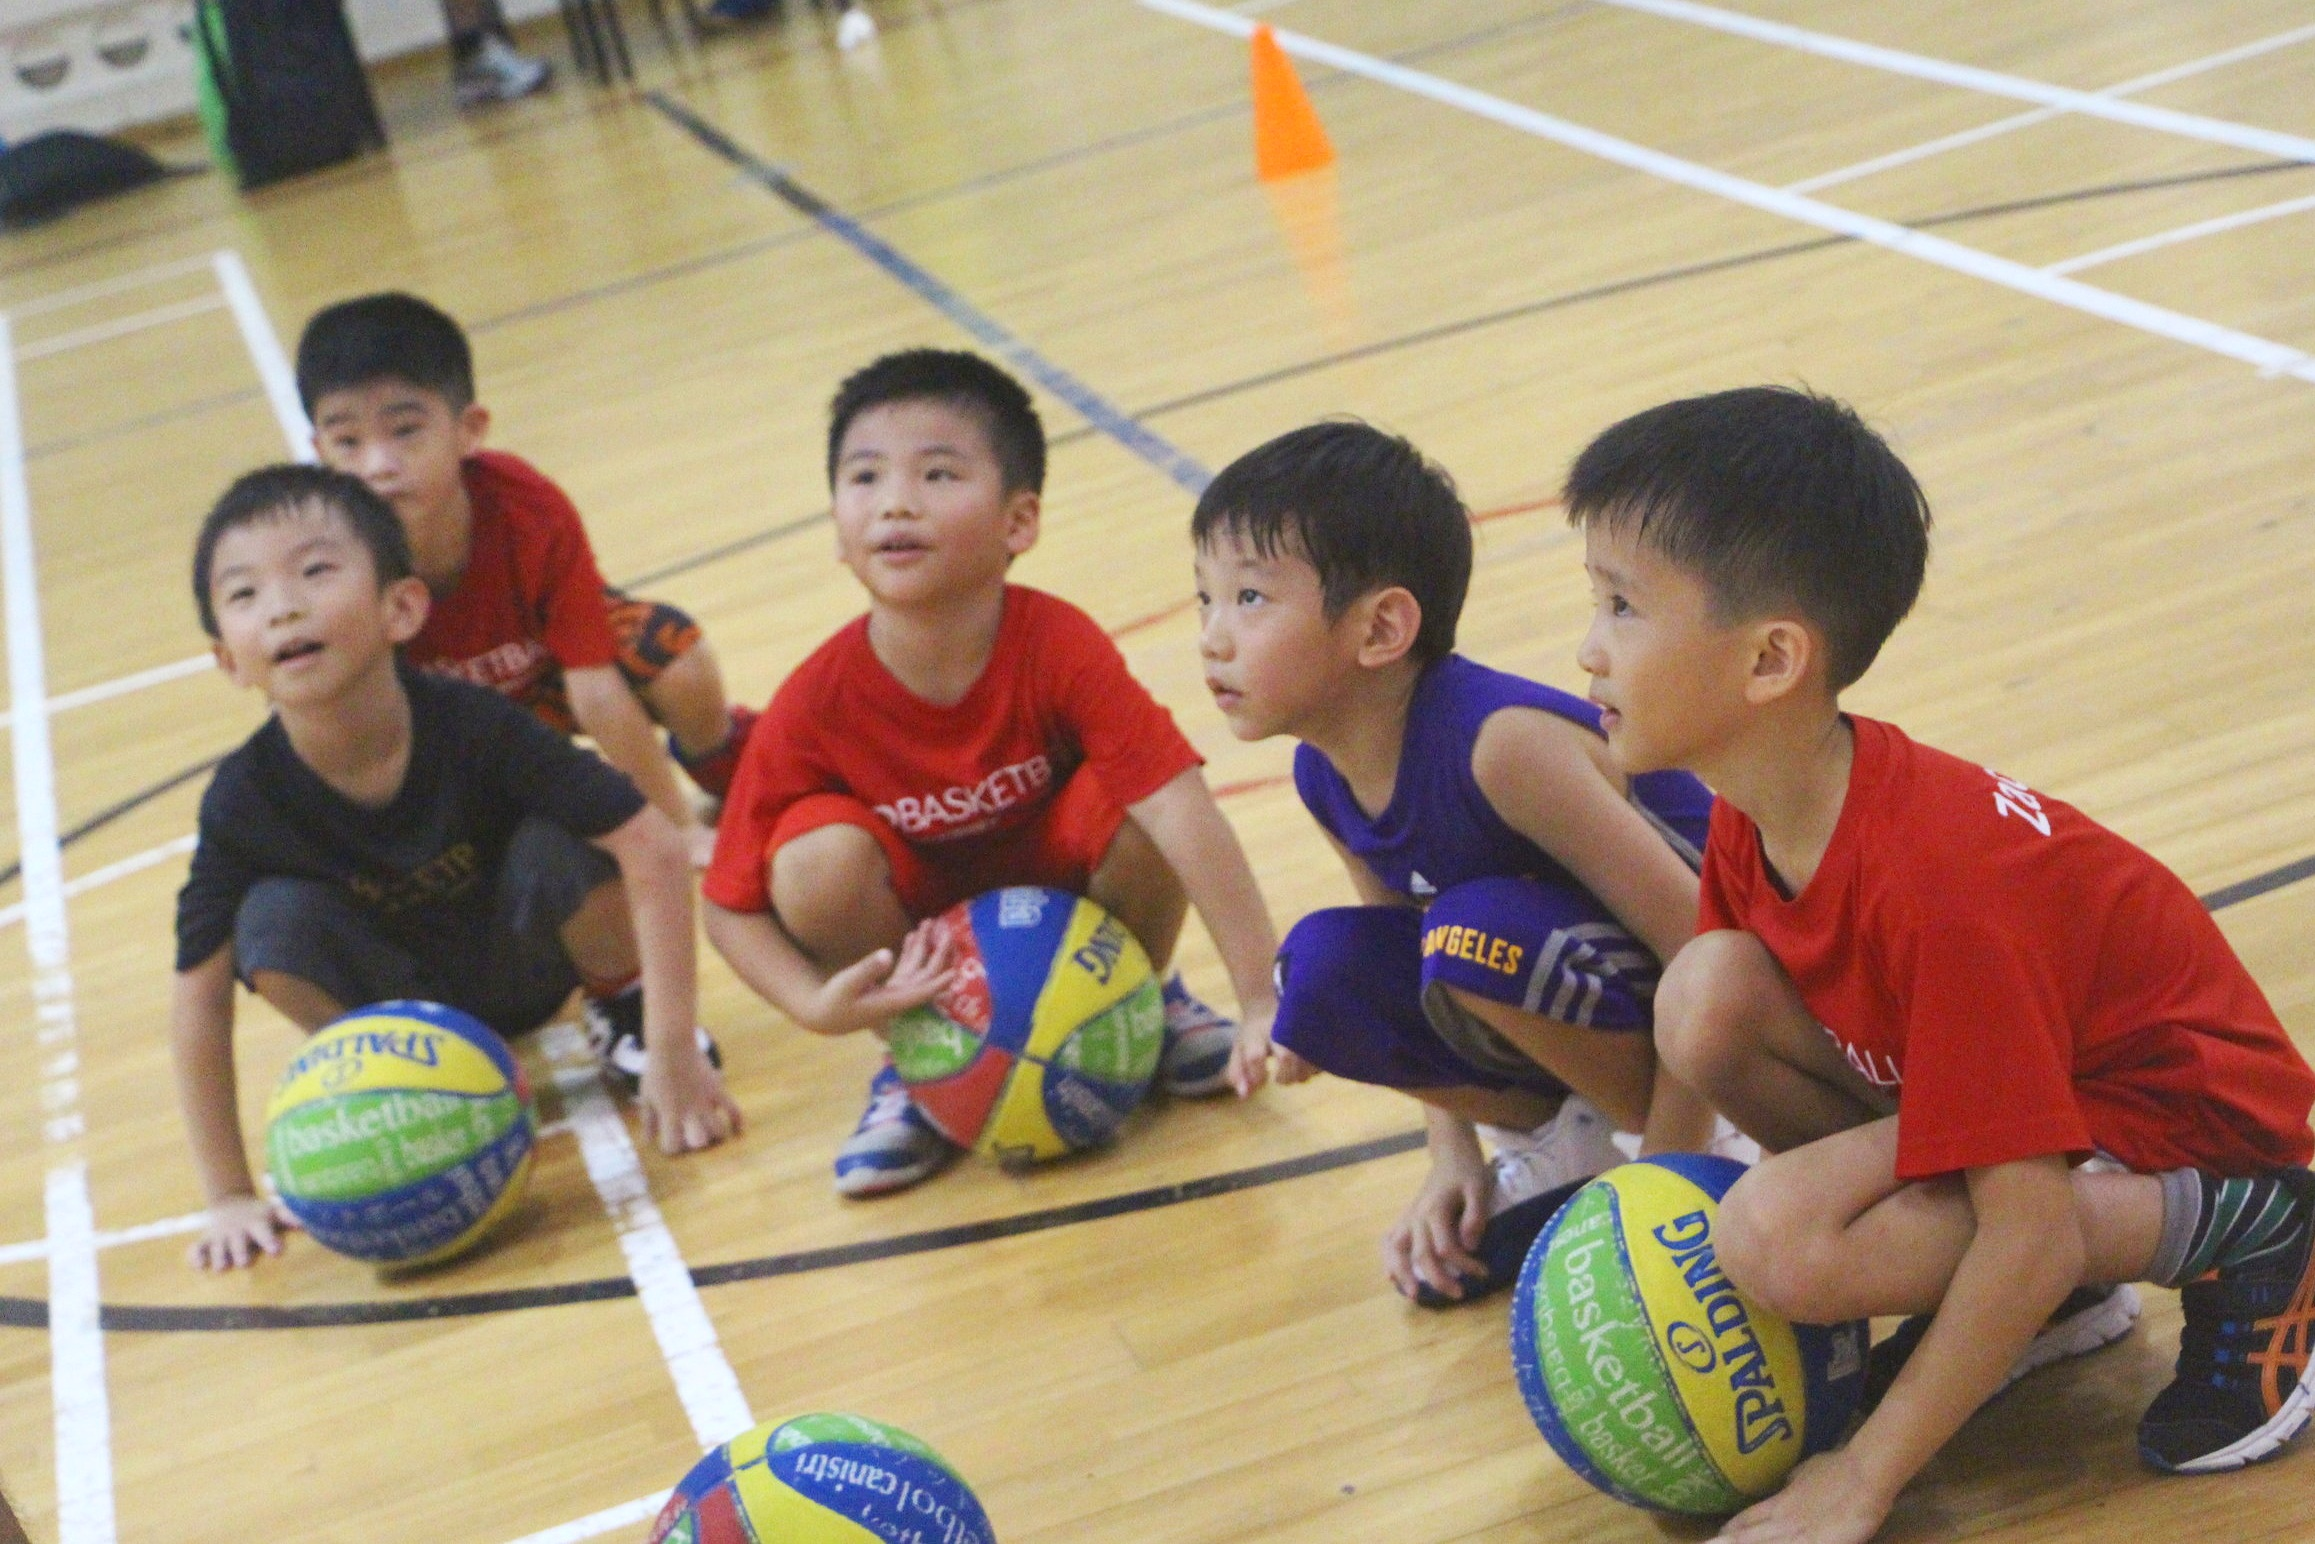 holiday camps - Basketball & Multi-Sports Holiday Camps are offered in various venues across Singapore... more